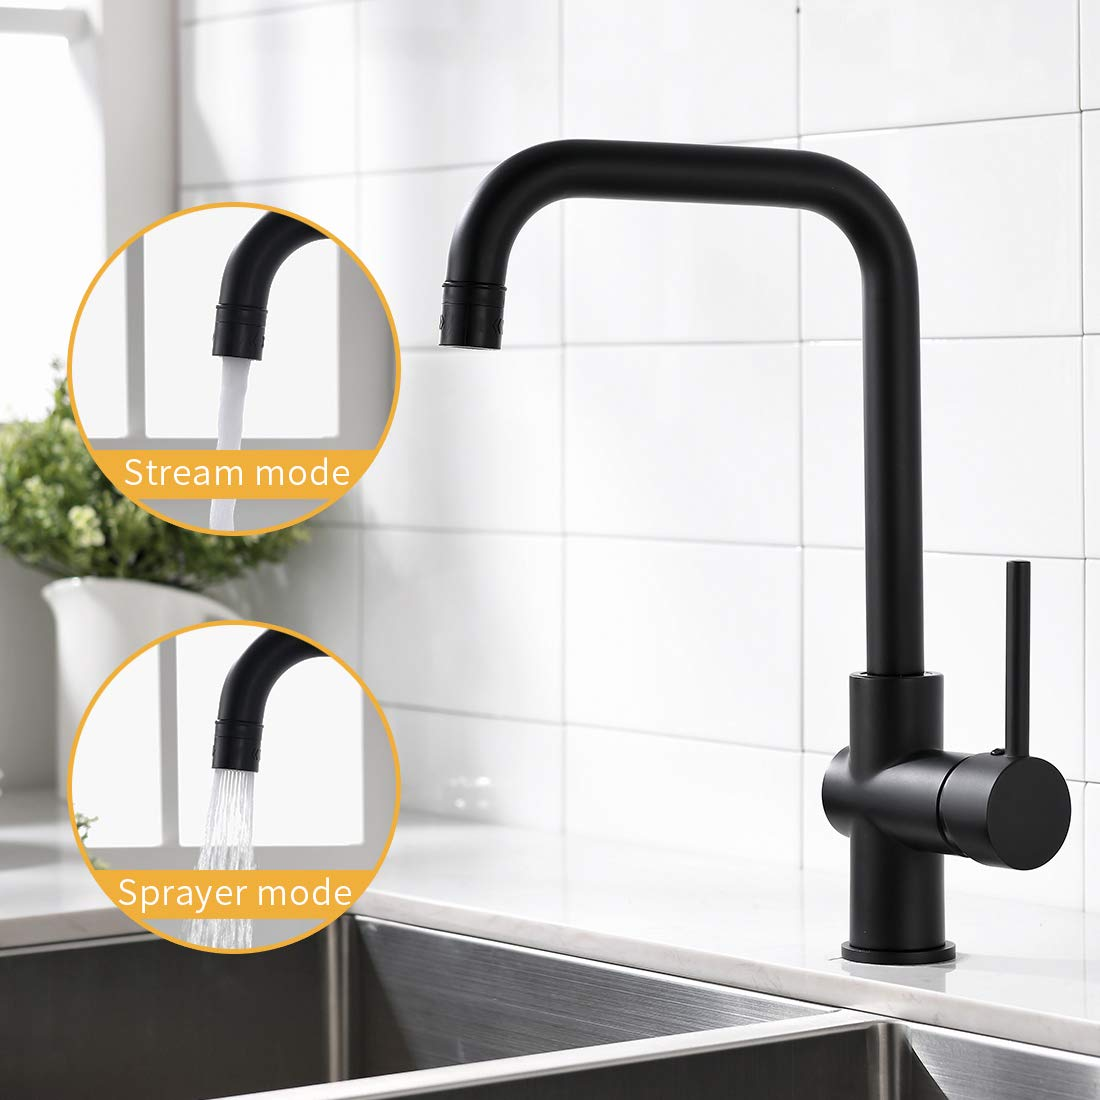 WANMAI Commercial Kitchen Faucet, Single Handle 360 Degree Rotation Sink Faucets with Solid Brass Body & Ceramic Valve, Matte Black